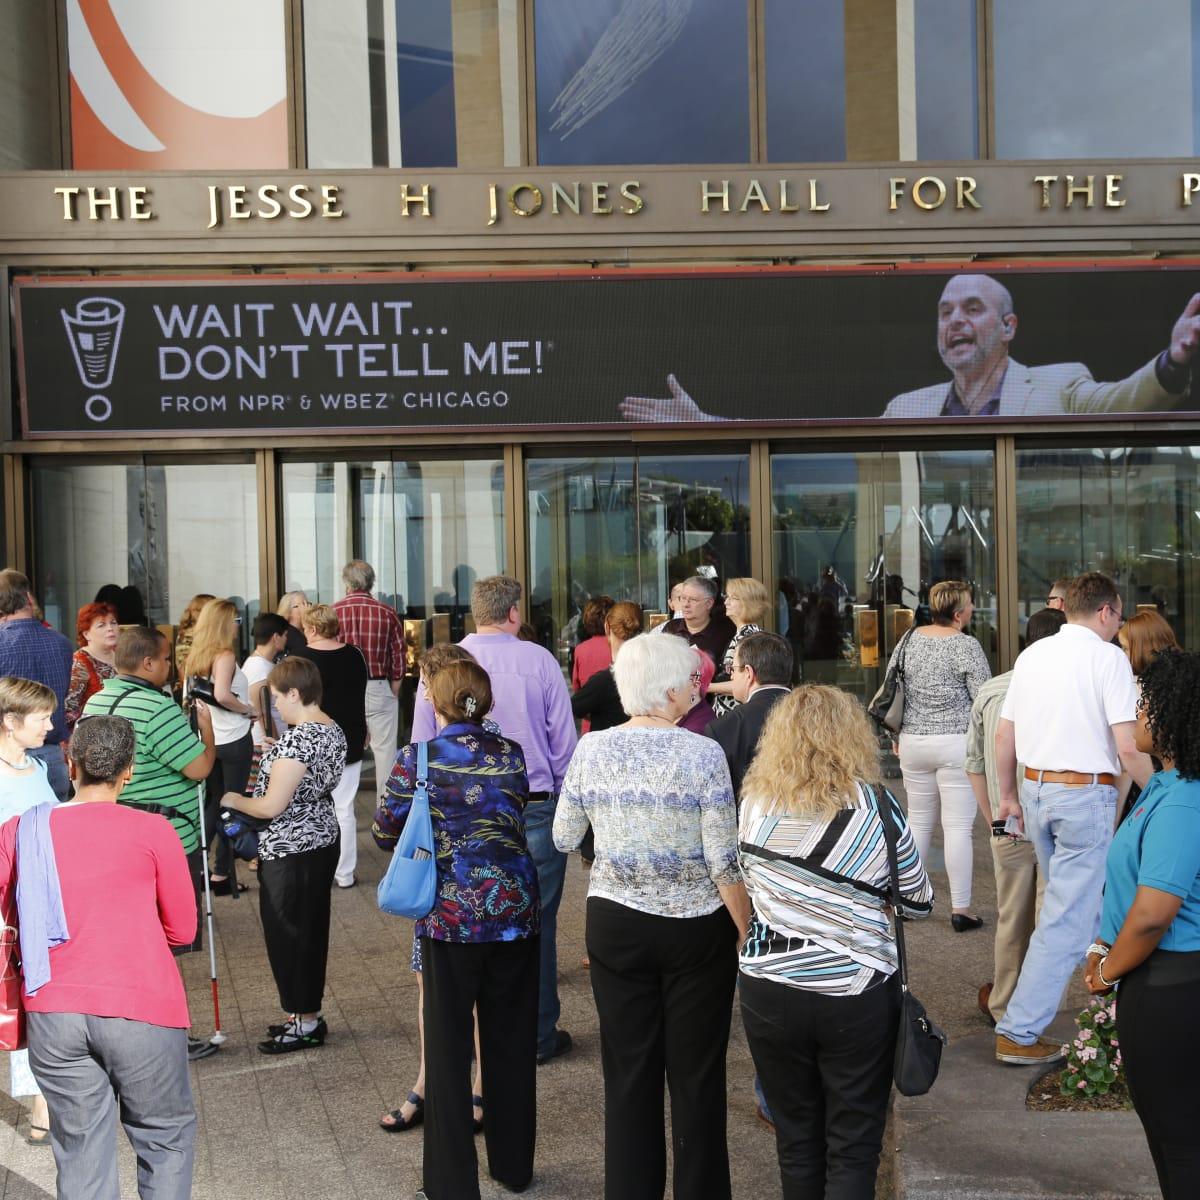 Outside of Jones Hall before taping of Wait Wait Don't Tell Me